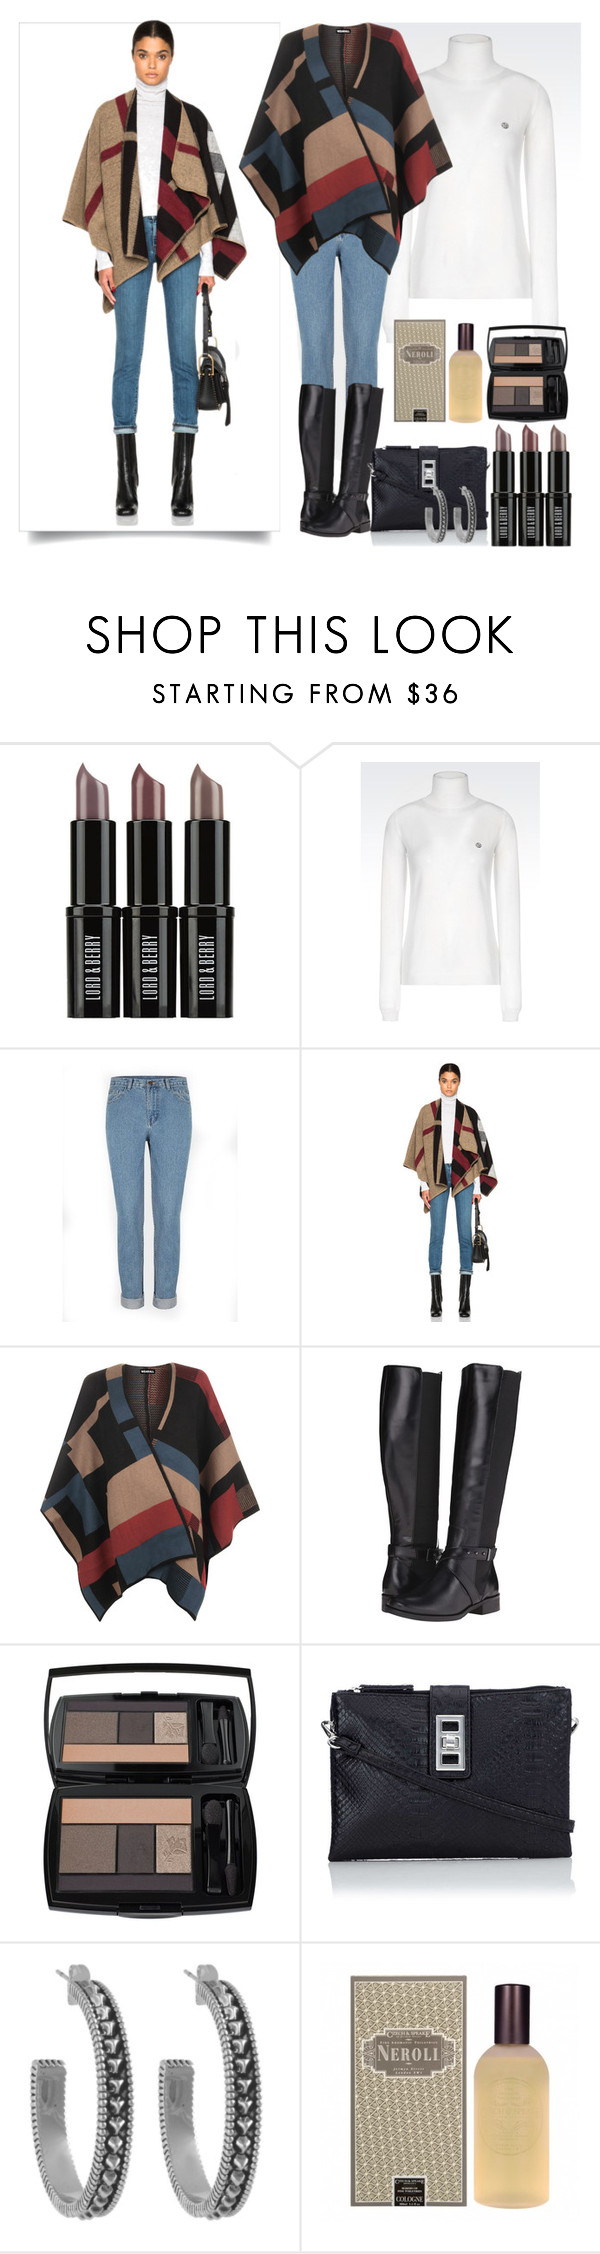 """Untitled #2507"" by nefertiti1373 ❤ liked on Polyvore featuring Lord & Berry, Armani Jeans, Burberry, WearAll, Steven, Lancôme, Wallis, House of Harlow 1960 and Czech & Speake"